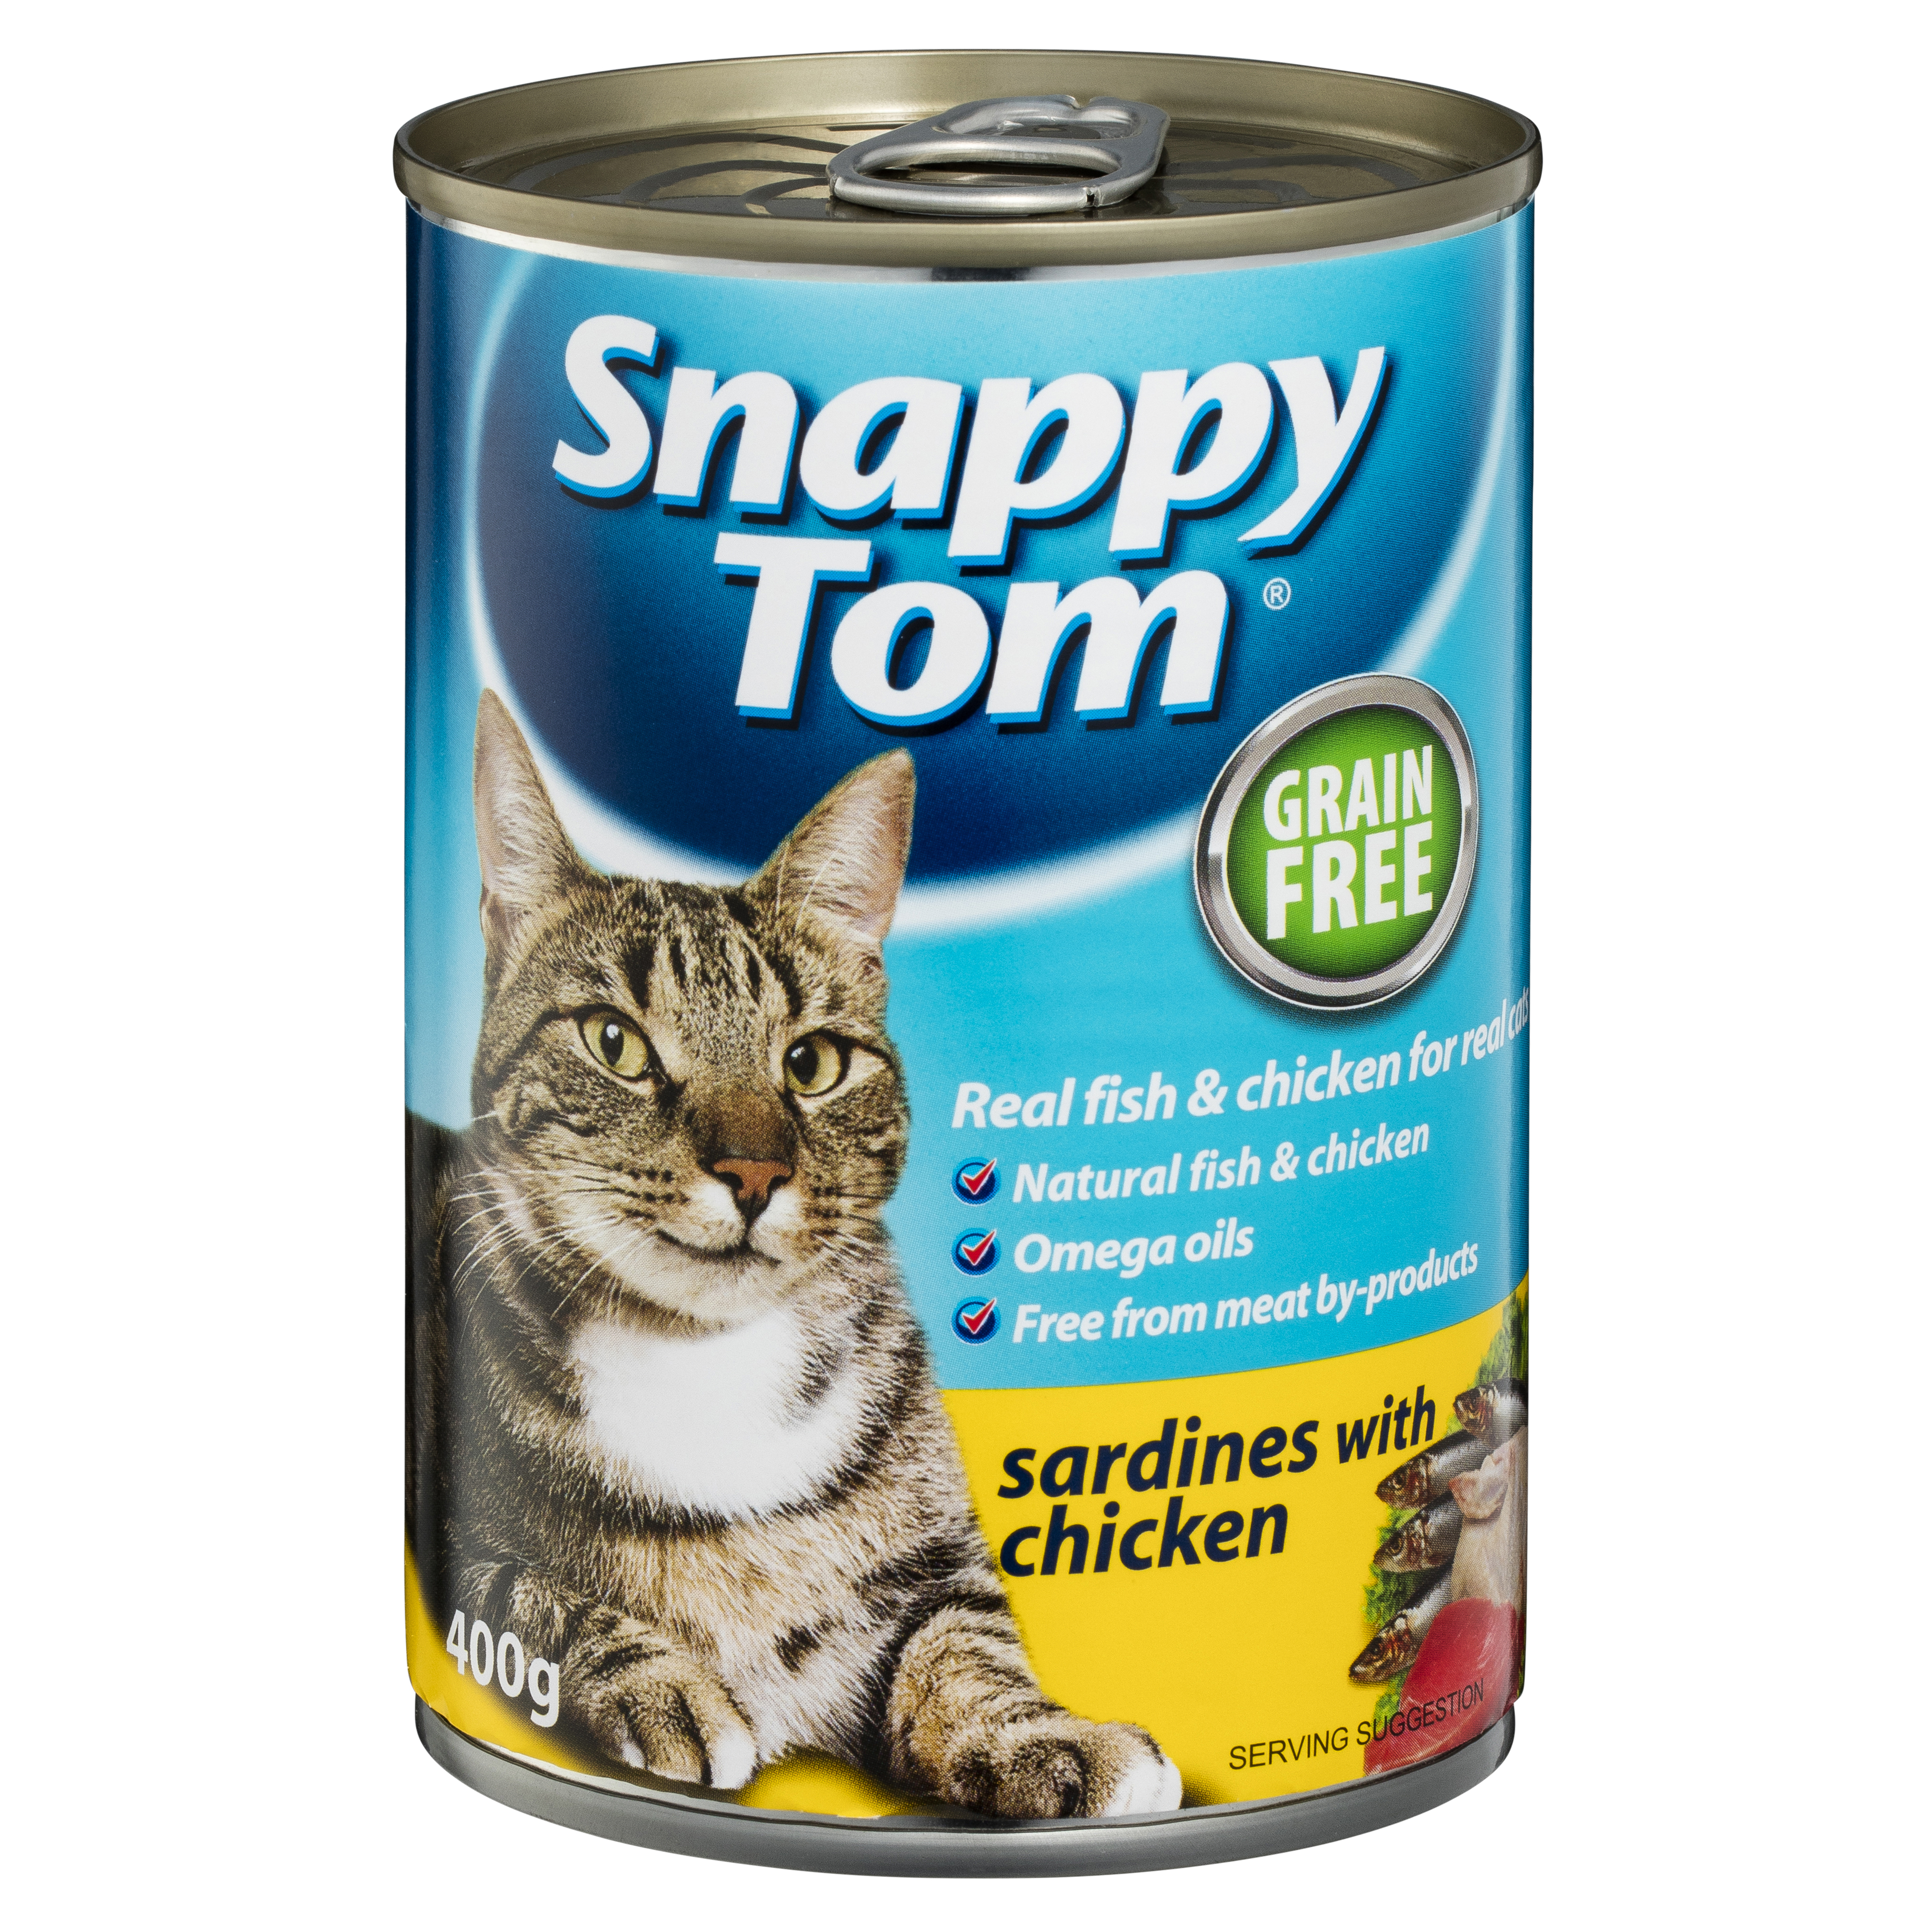 snappy-tom-sardines-with-chicken-400g-0